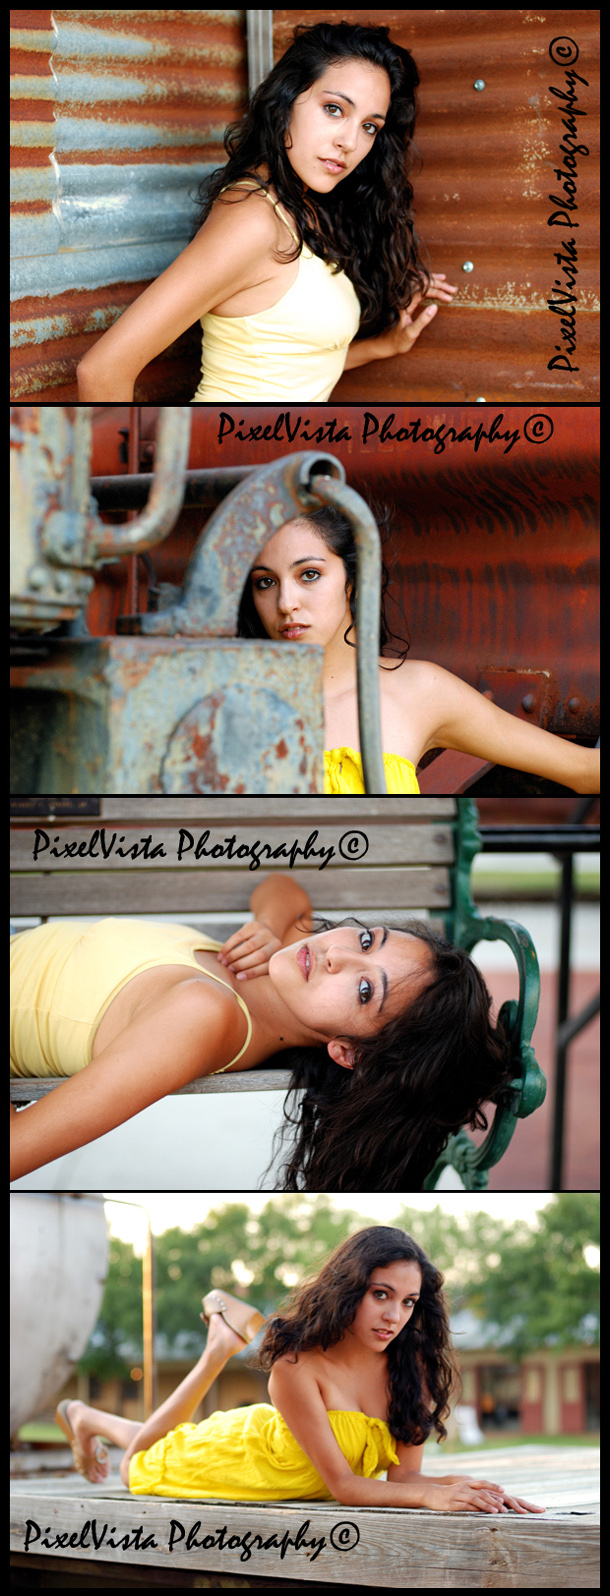 Male and Female model photo shoot of PixelVista Photography and Christina Wood